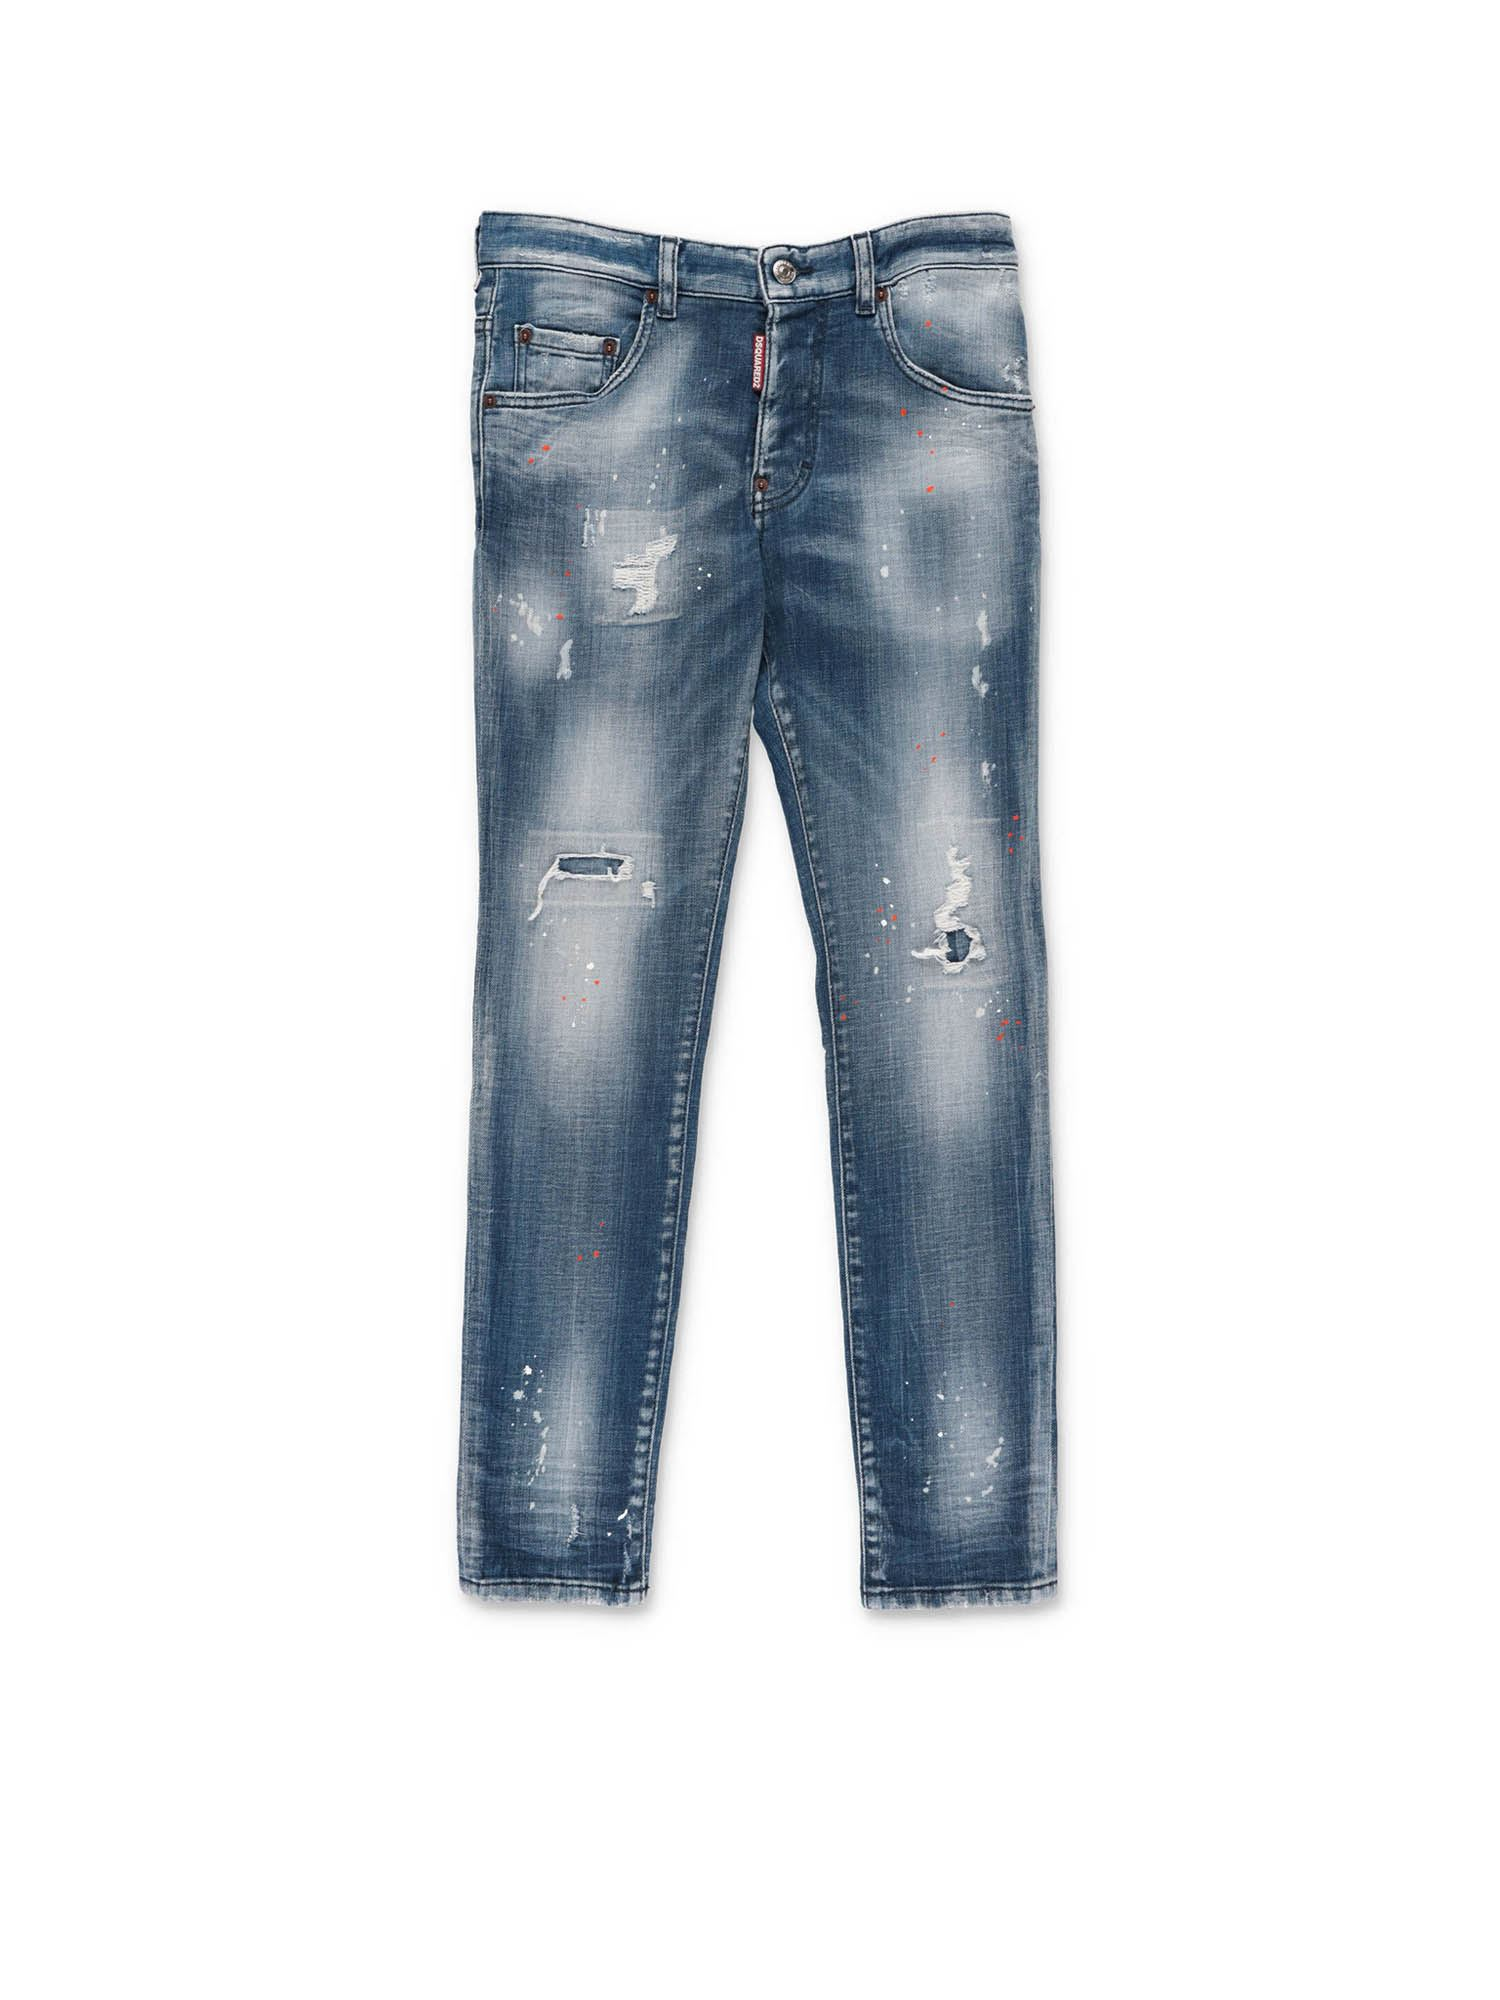 Dsquared2 FIVE-POCKET JEANS IN BLUE